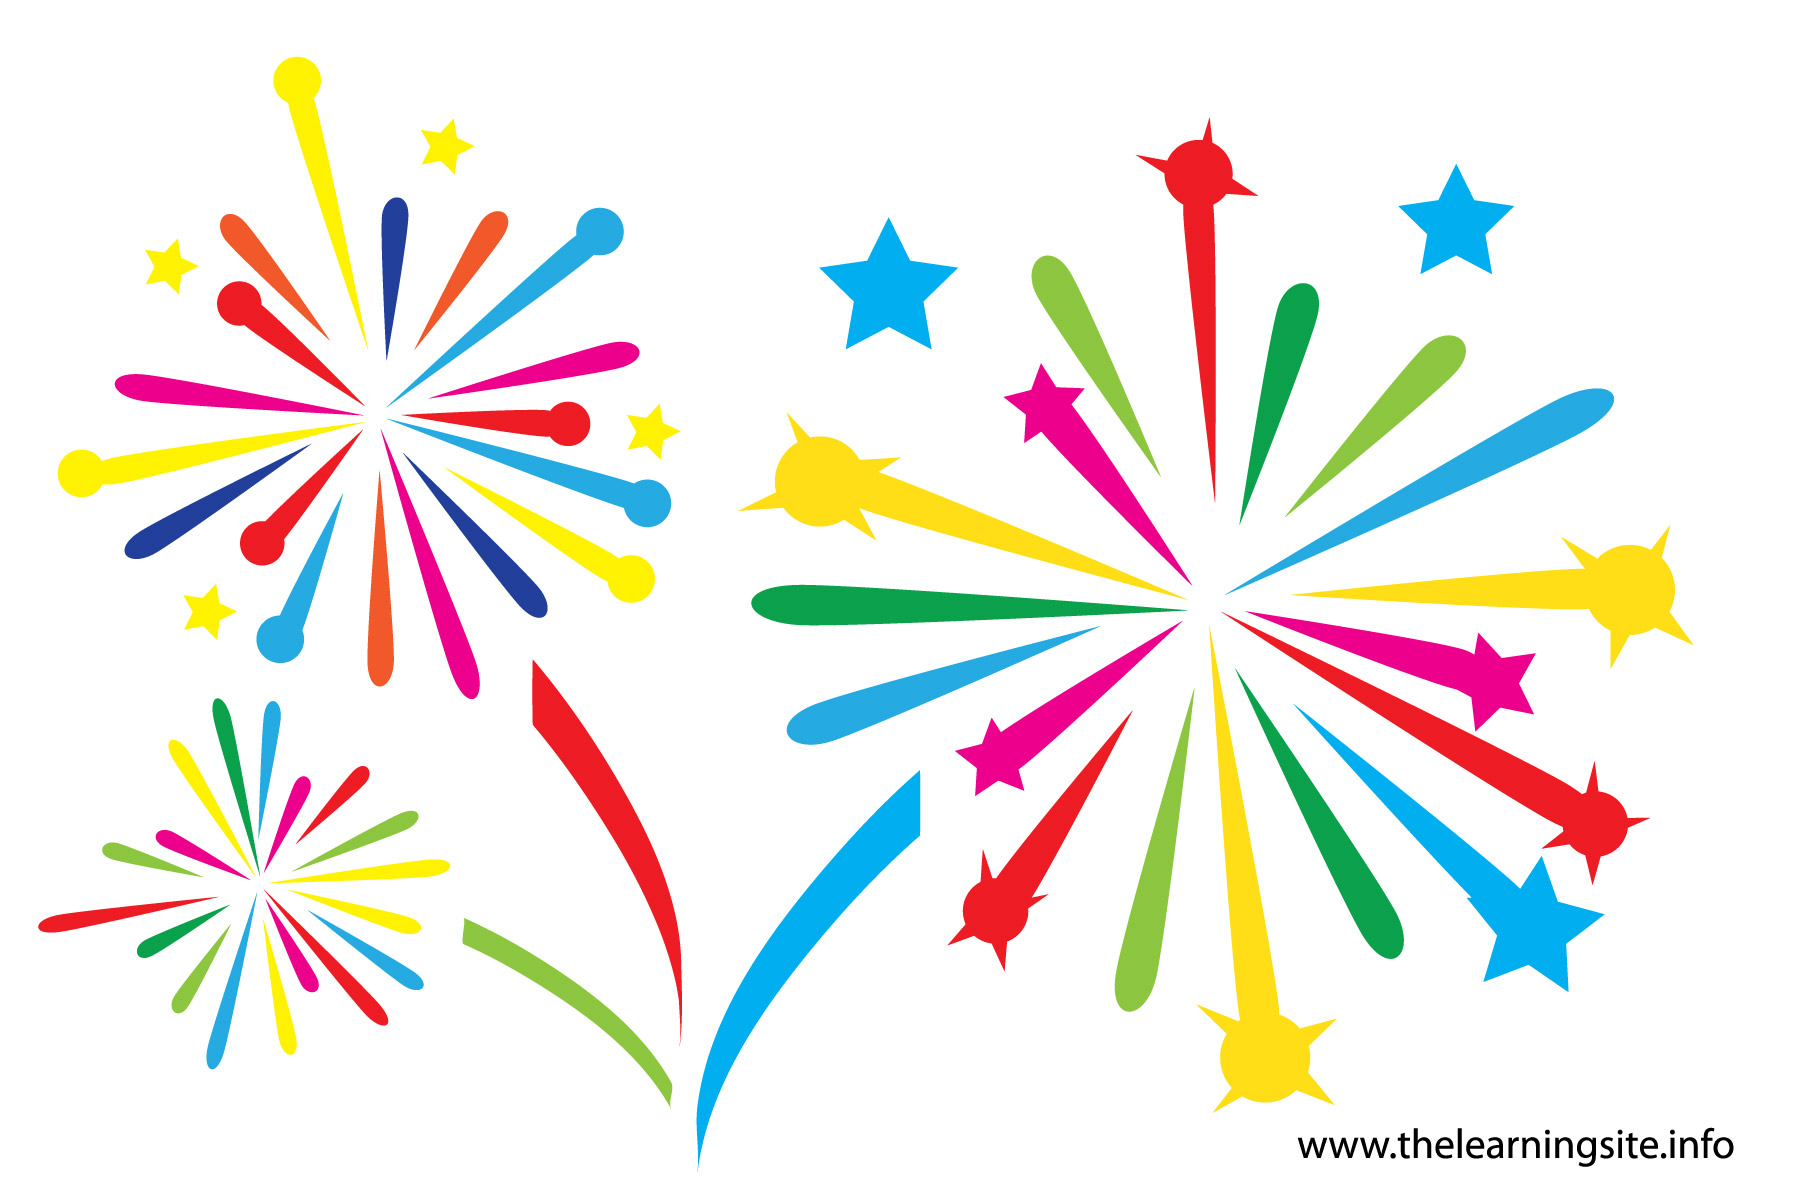 Free fireworks clipart image 0